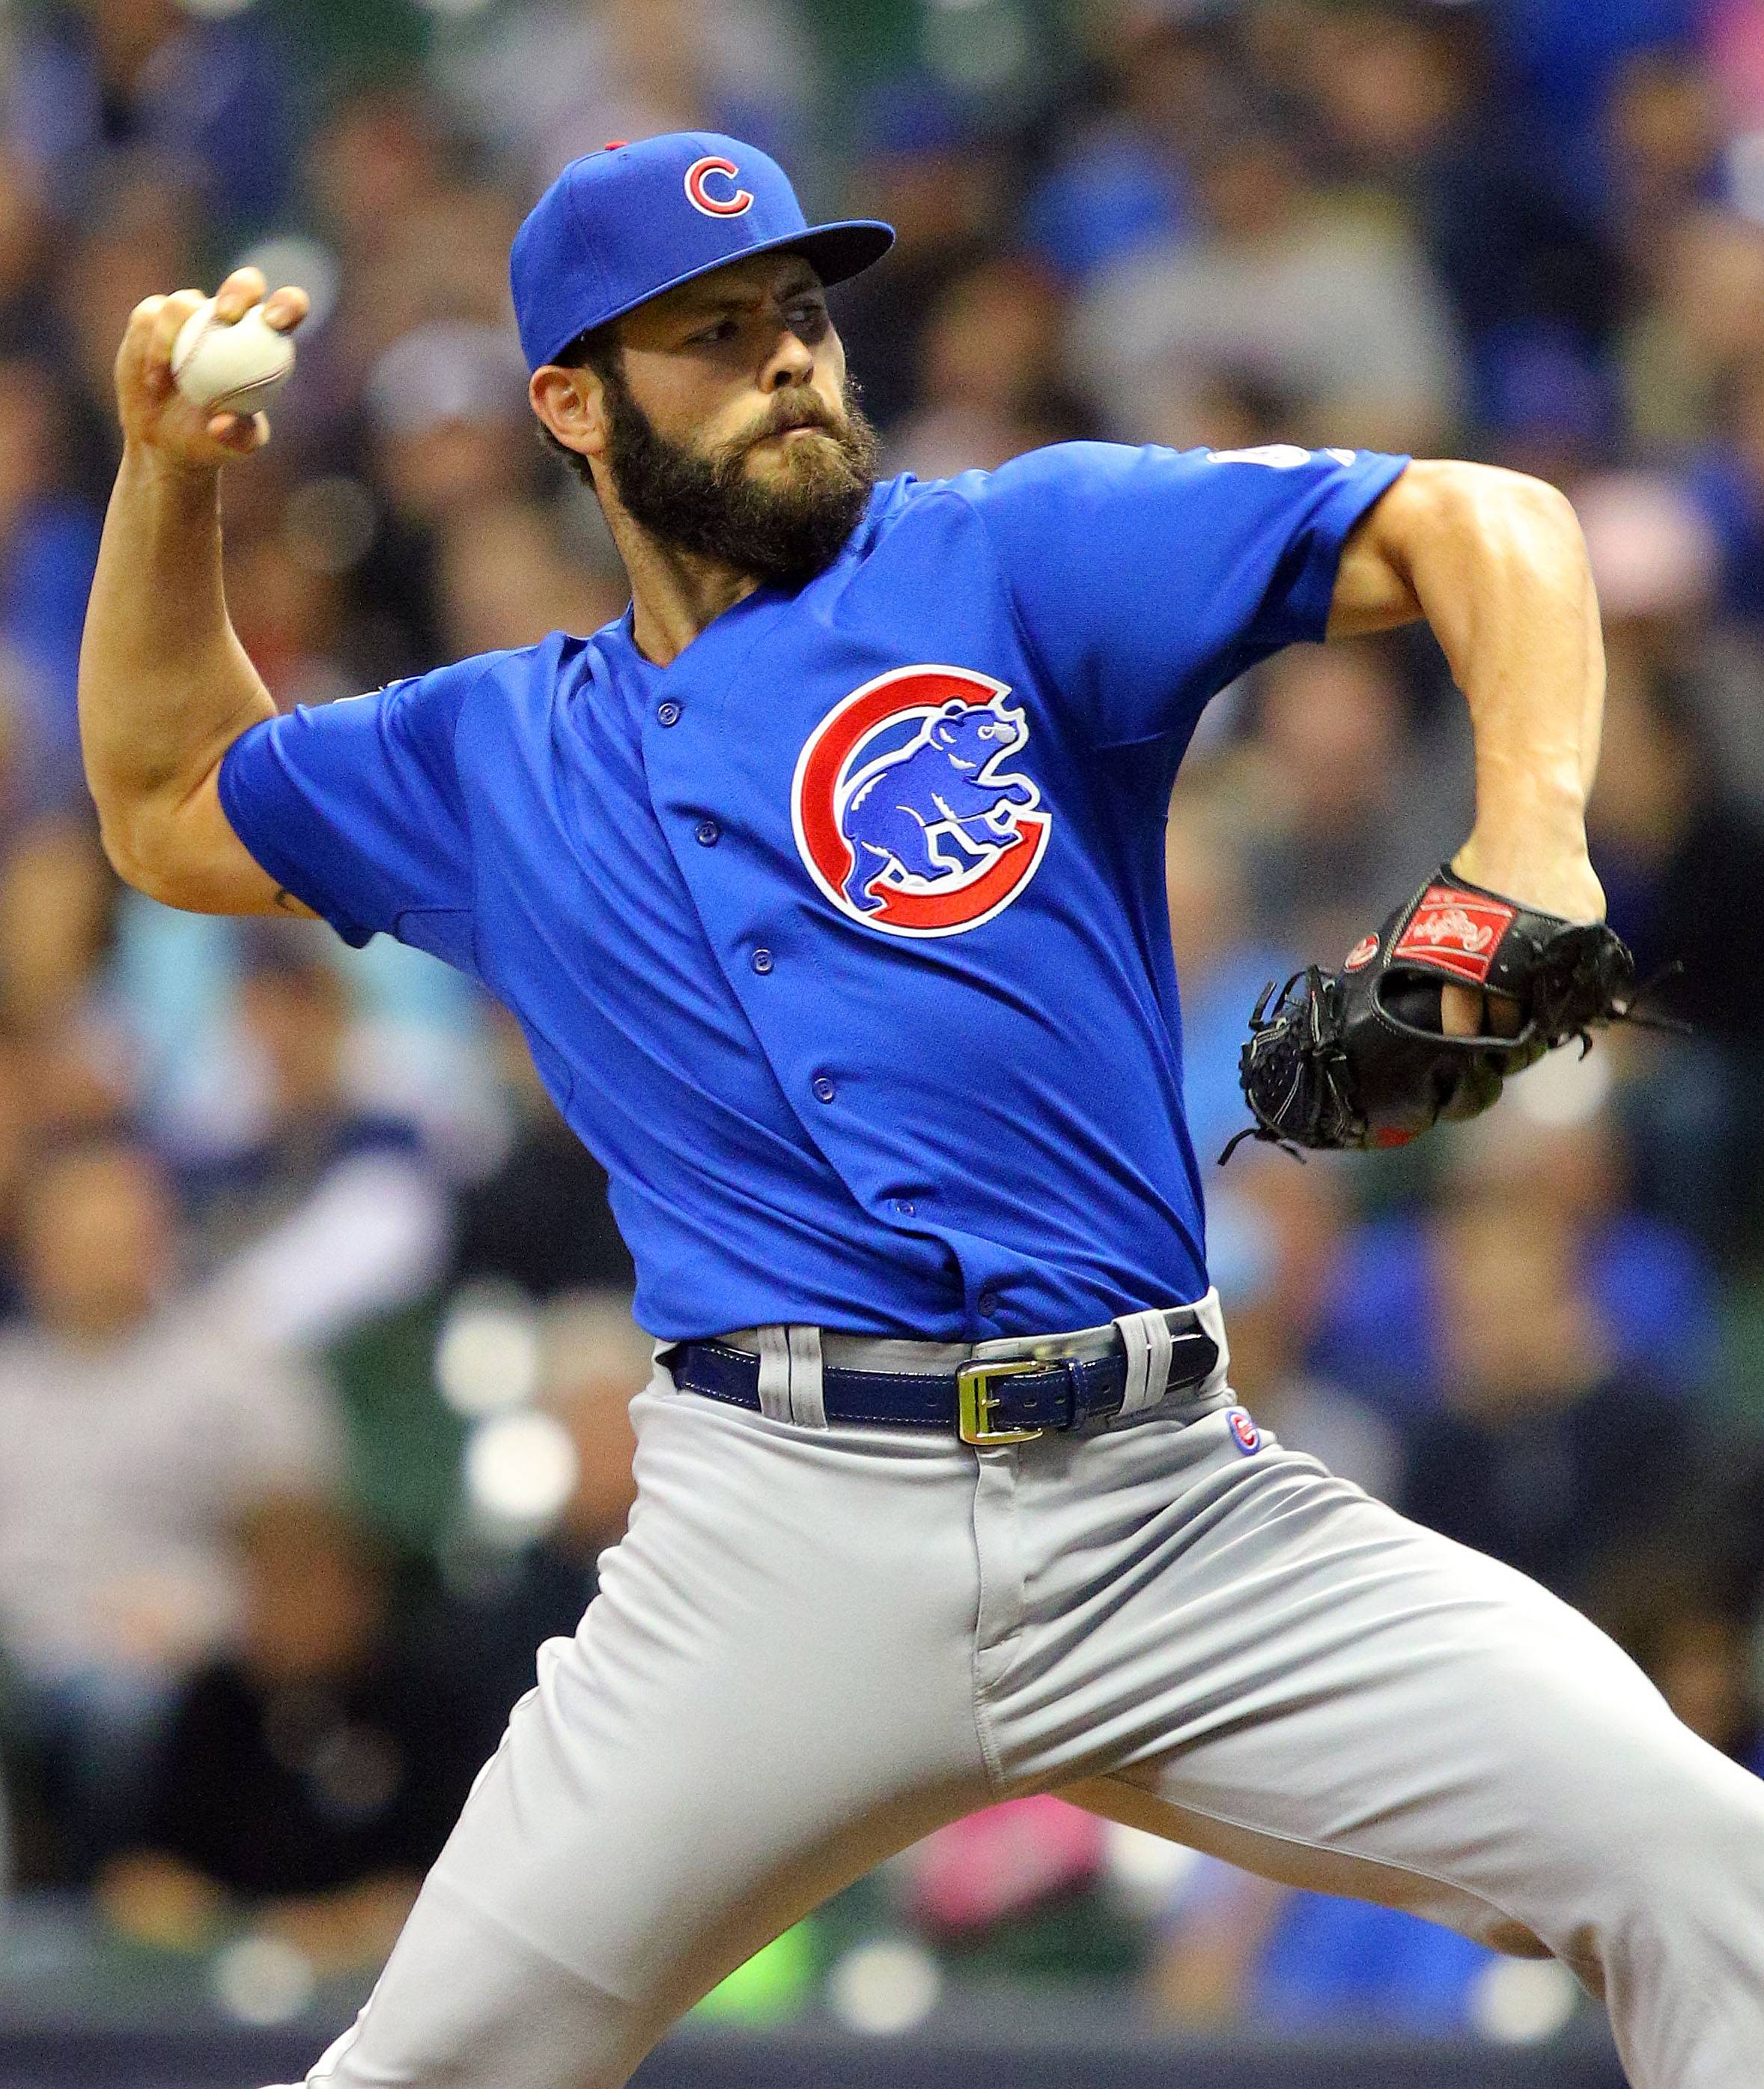 A Tuesday date for a salary-arbitration hearing looms as the Cubs and starting pitcher Jake Arrieta remain far apart in salary negotiations.